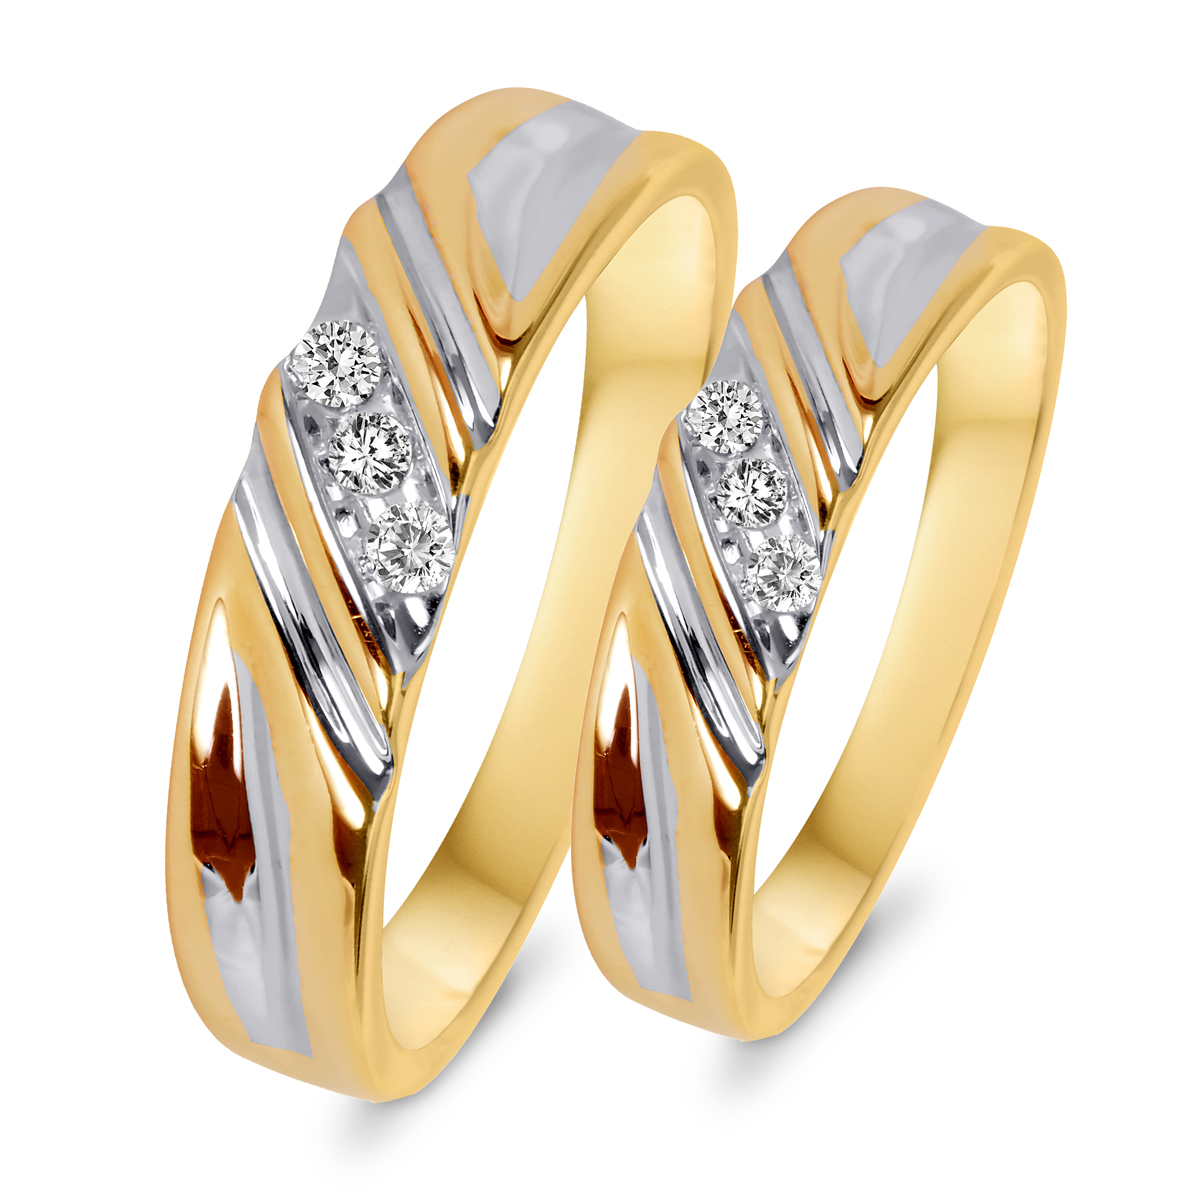 1/10 CT. T.W. Diamond His And Hers Wedding Rings 10K Yellow Gold